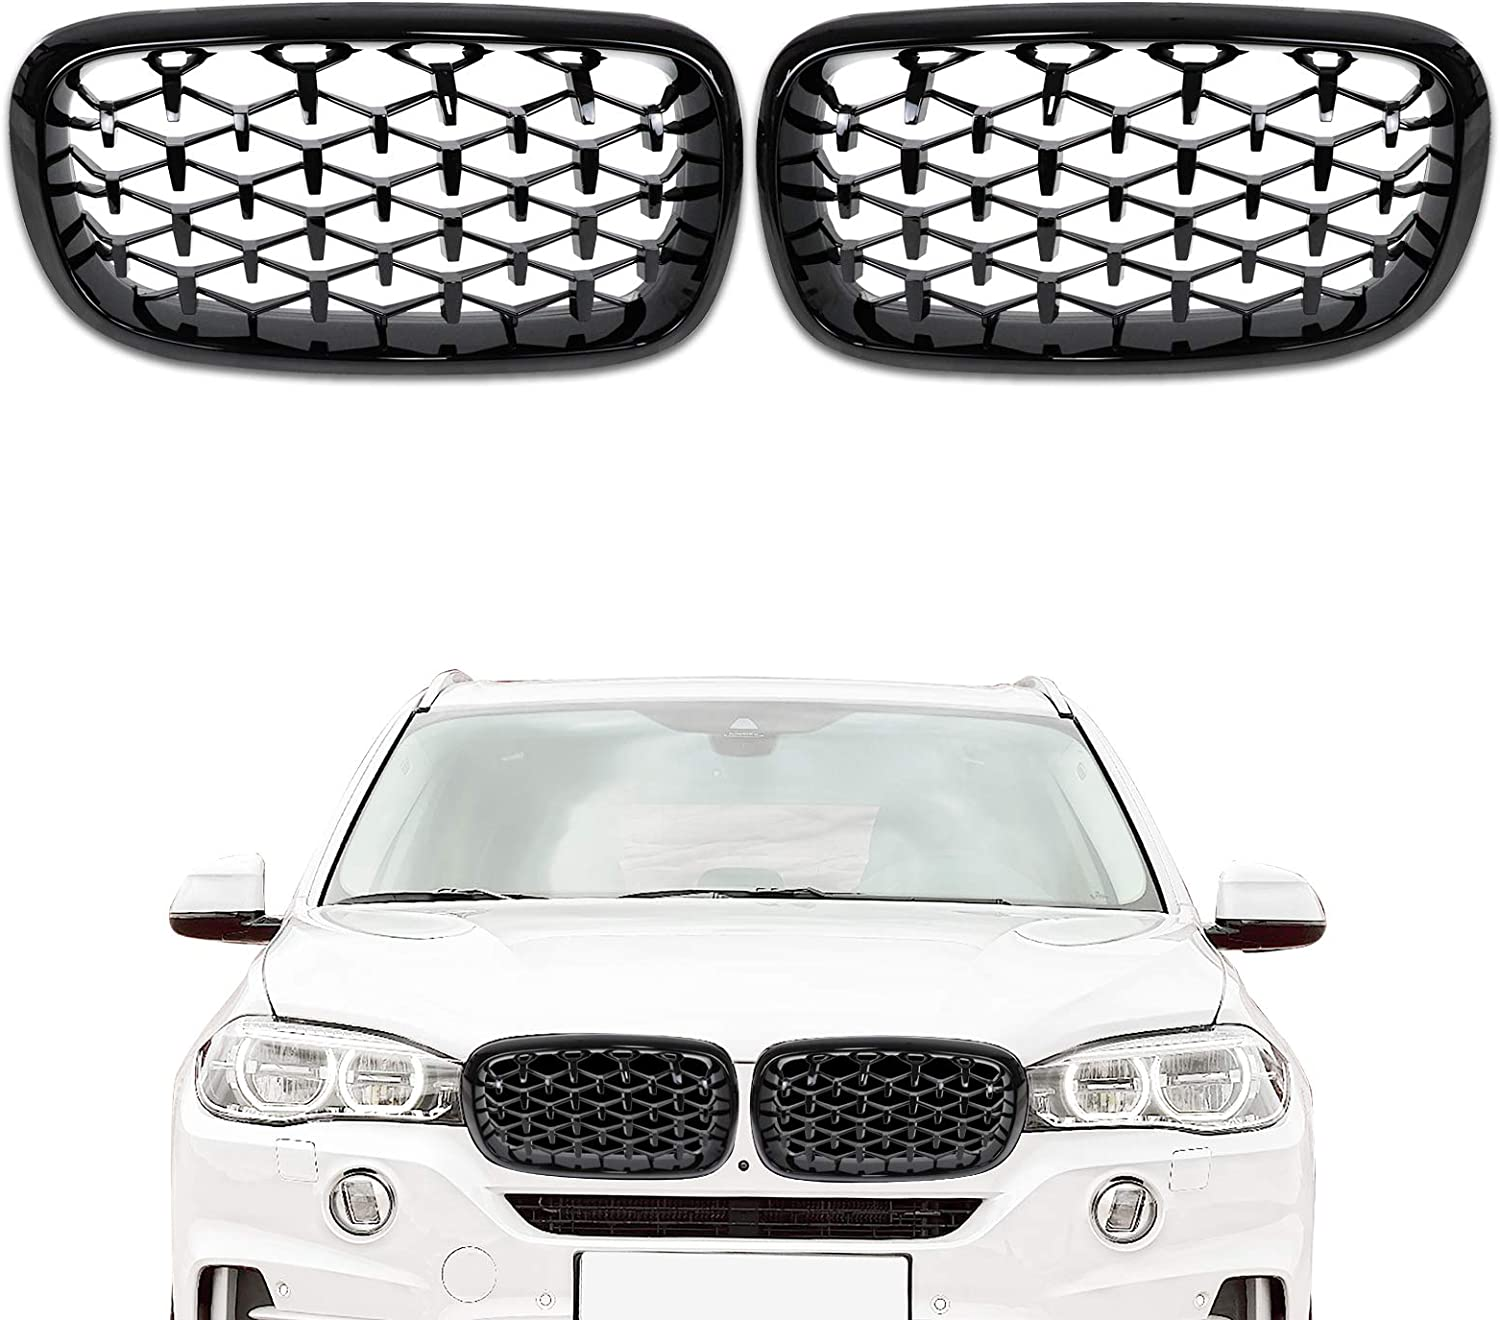 DSISIMO Gloss Max 41% OFF Black Diamond Star-shaped Kidney Mesh Grille Fashion Front